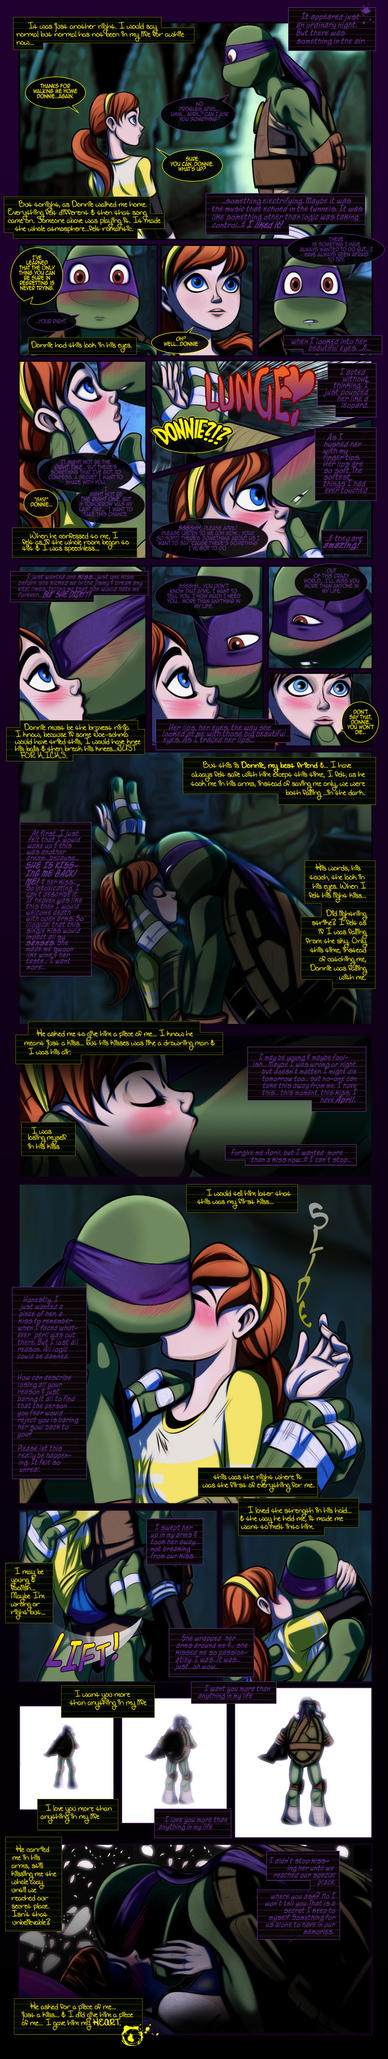 Donatello+April Fan-Comic Parachute by JasmineAlexandra